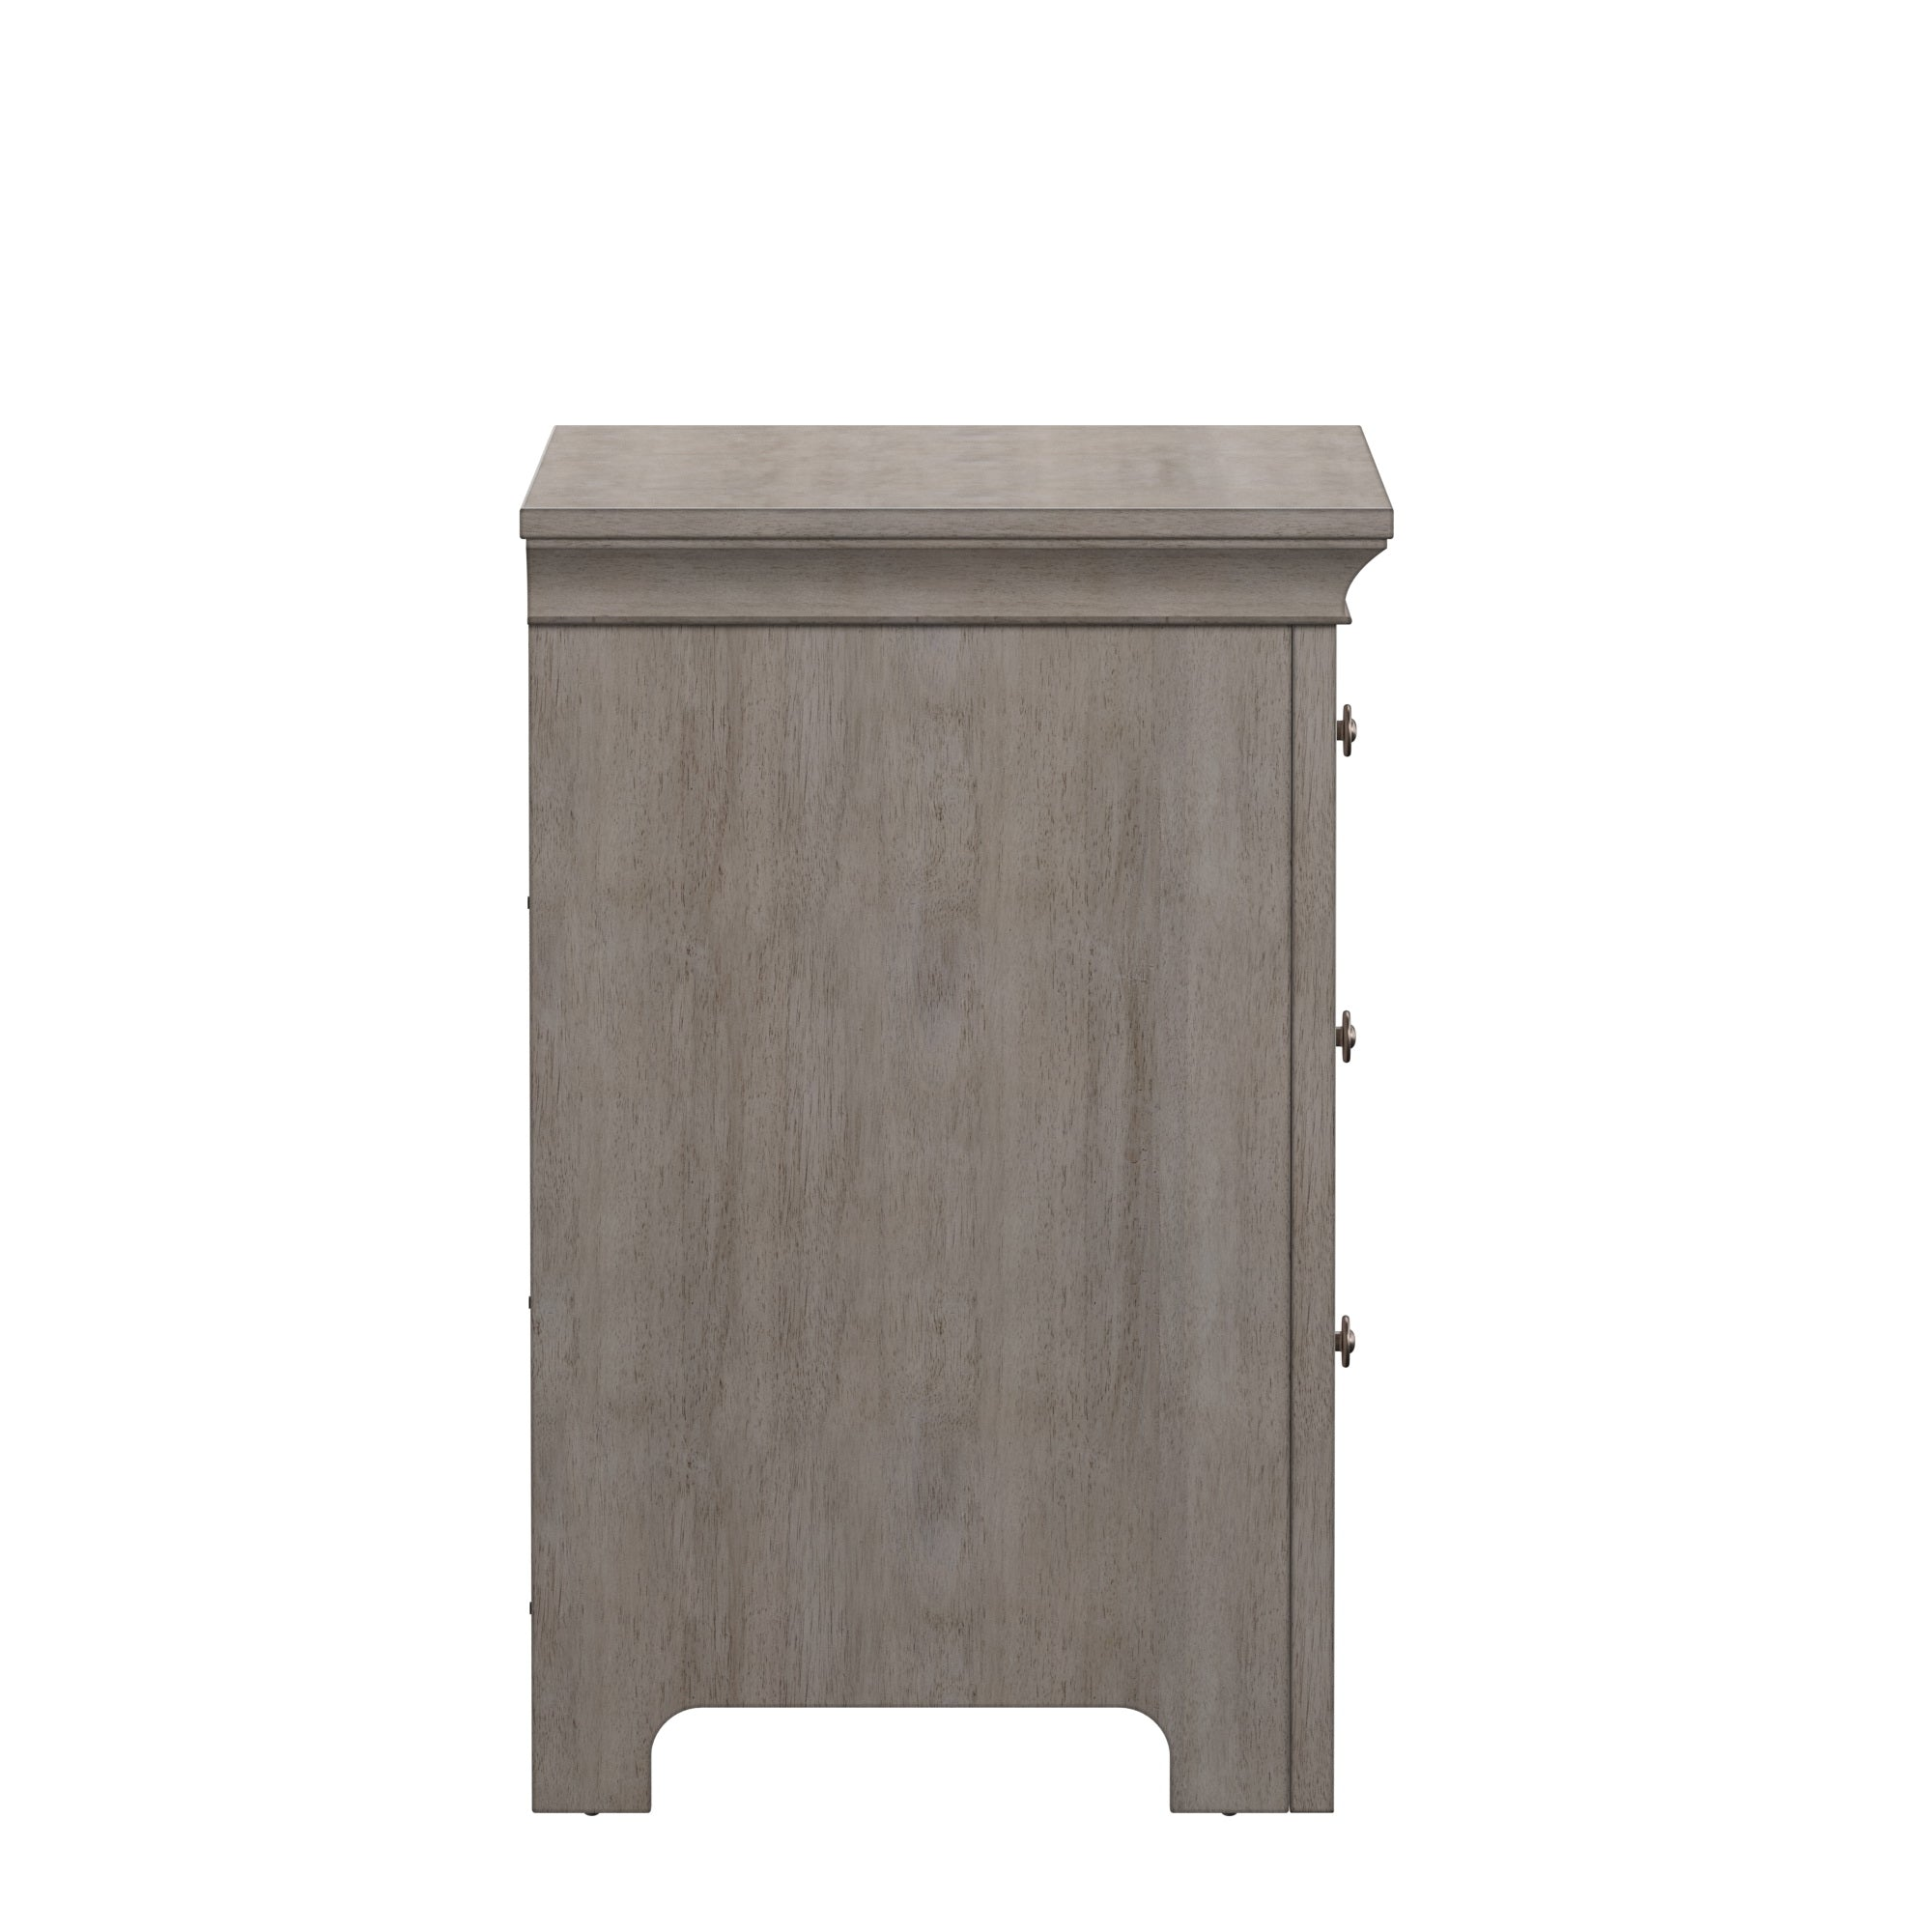 3-drawer Wood Modular Storage Nightstand with Charging Station - Off-White